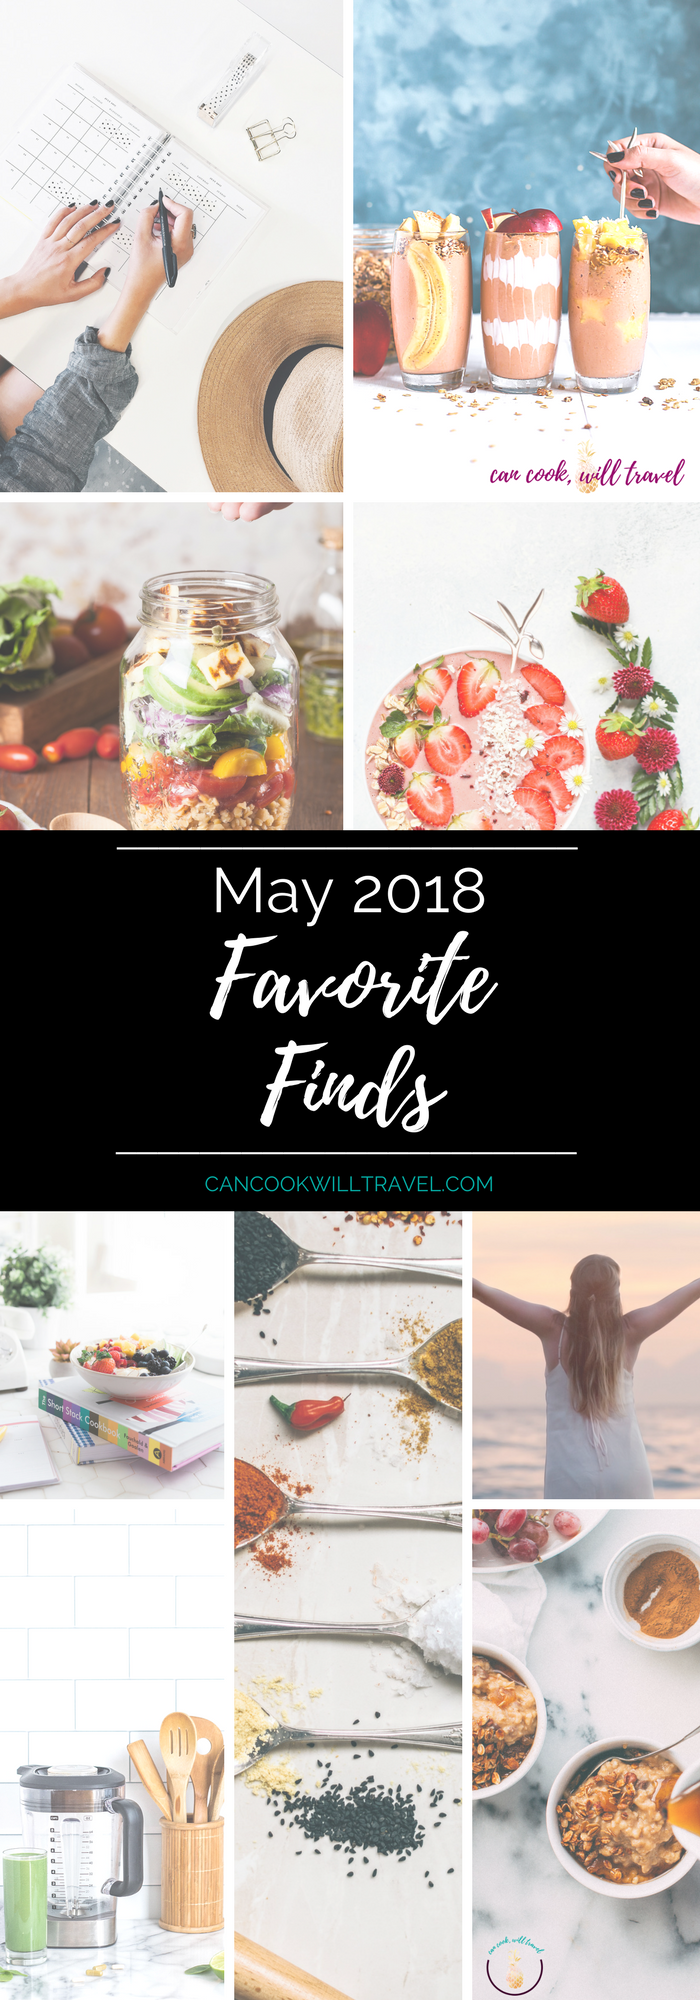 Favorite Things_May 2018_Tall